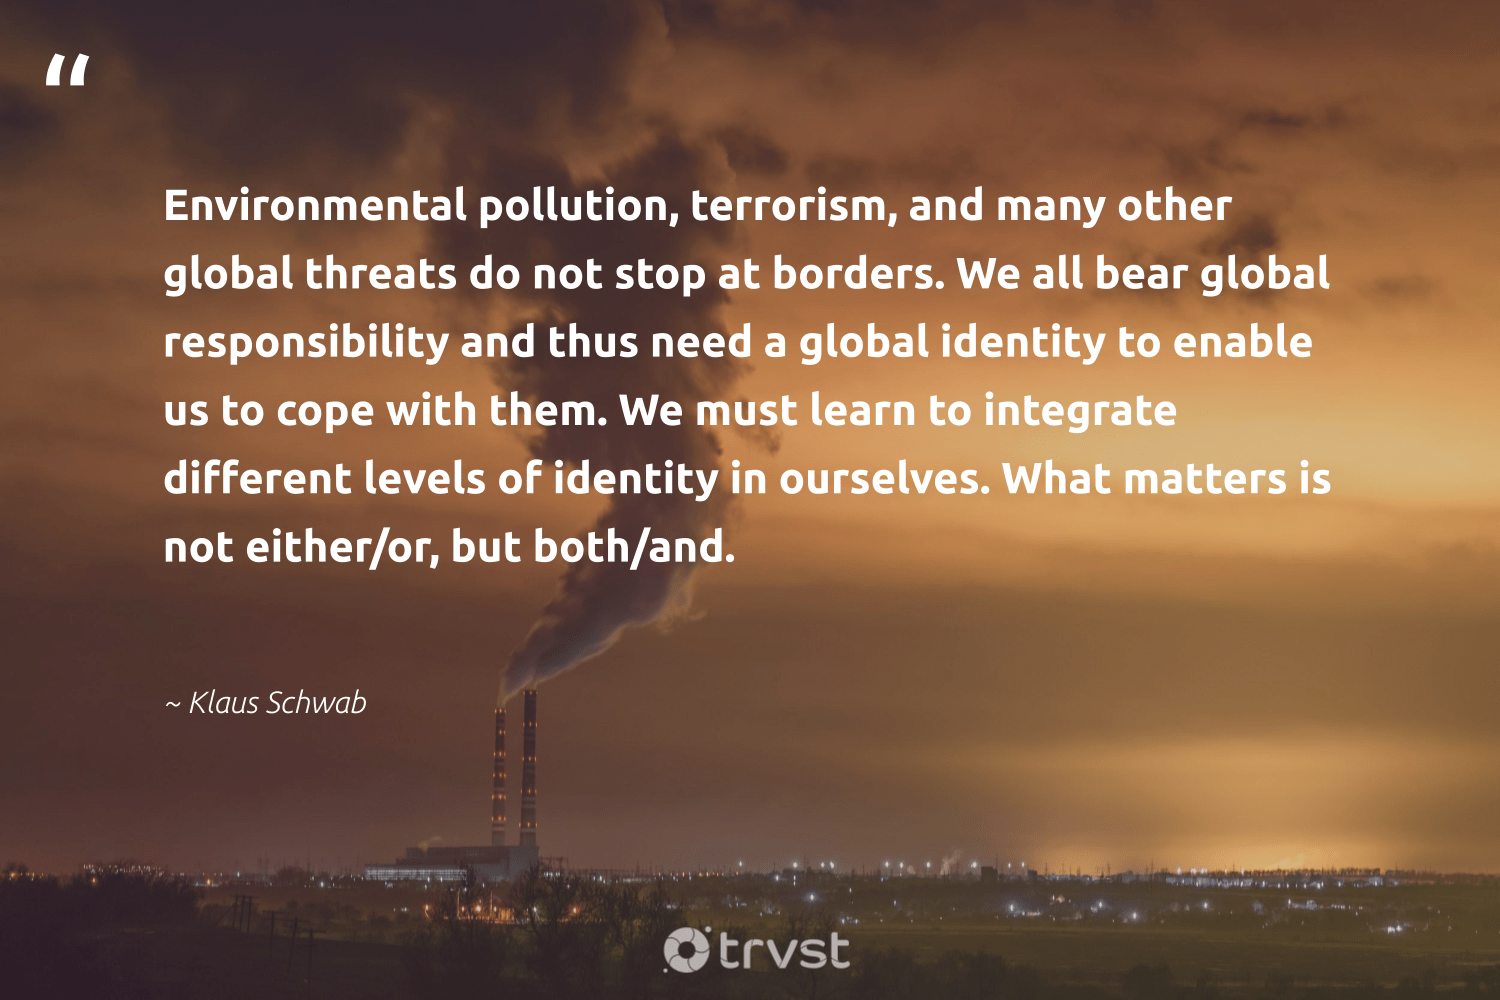 """""""Environmental pollution, terrorism, and many other global threats do not stop at borders. We all bear global responsibility and thus need a global identity to enable us to cope with them. We must learn to integrate different levels of identity in ourselves. What matters is not either/or, but both/and.""""  - Klaus Schwab #trvst #quotes #pollute #environmental #pollution #toxic #naturelovers #green #collectiveaction #environmentallyfriendly #sustainableliving #ecoconscious"""